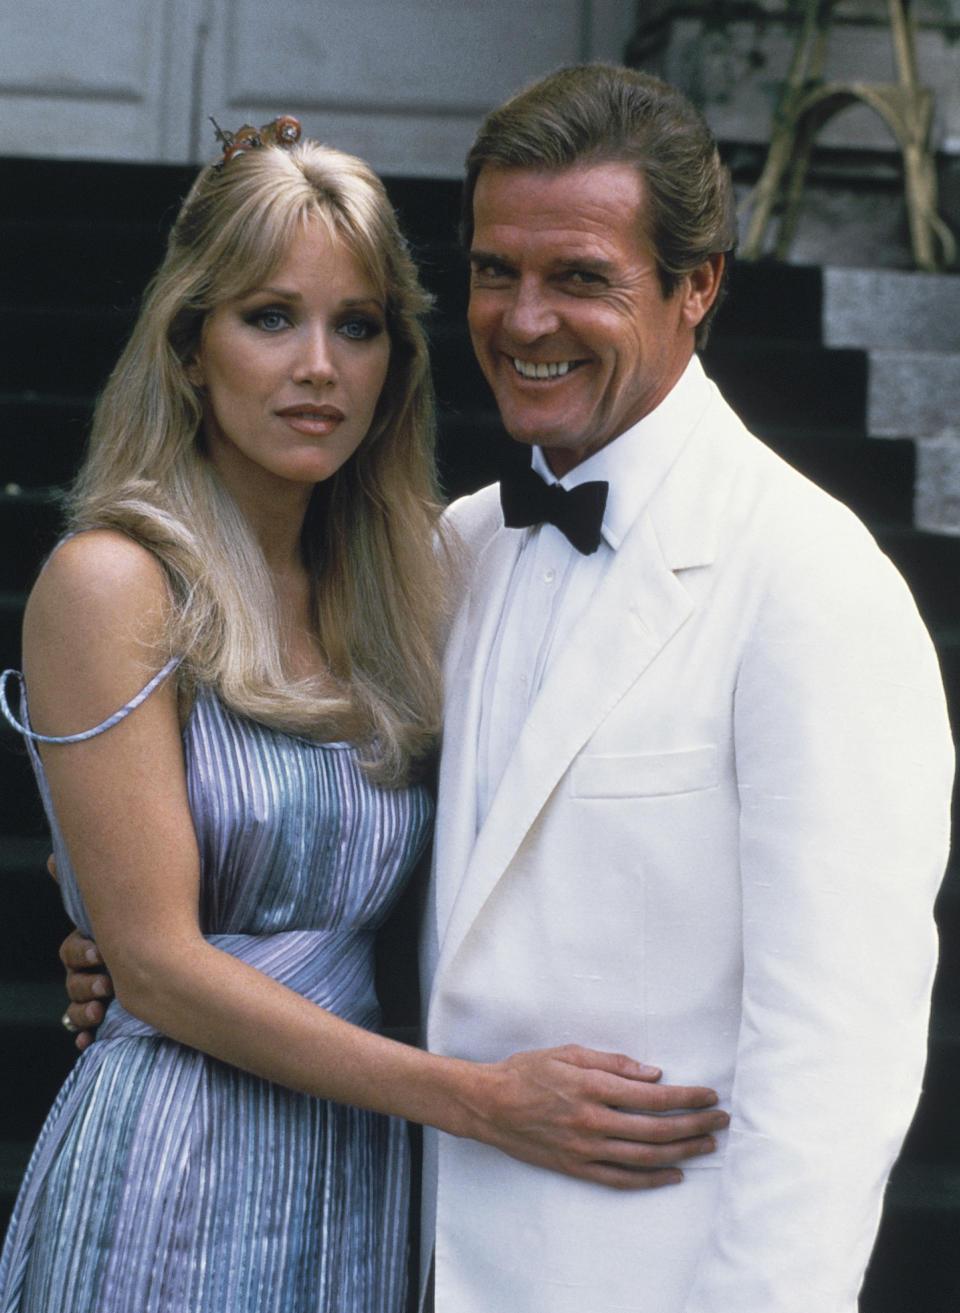 Roger Moore, right, poses with his co-star Tanya Roberts